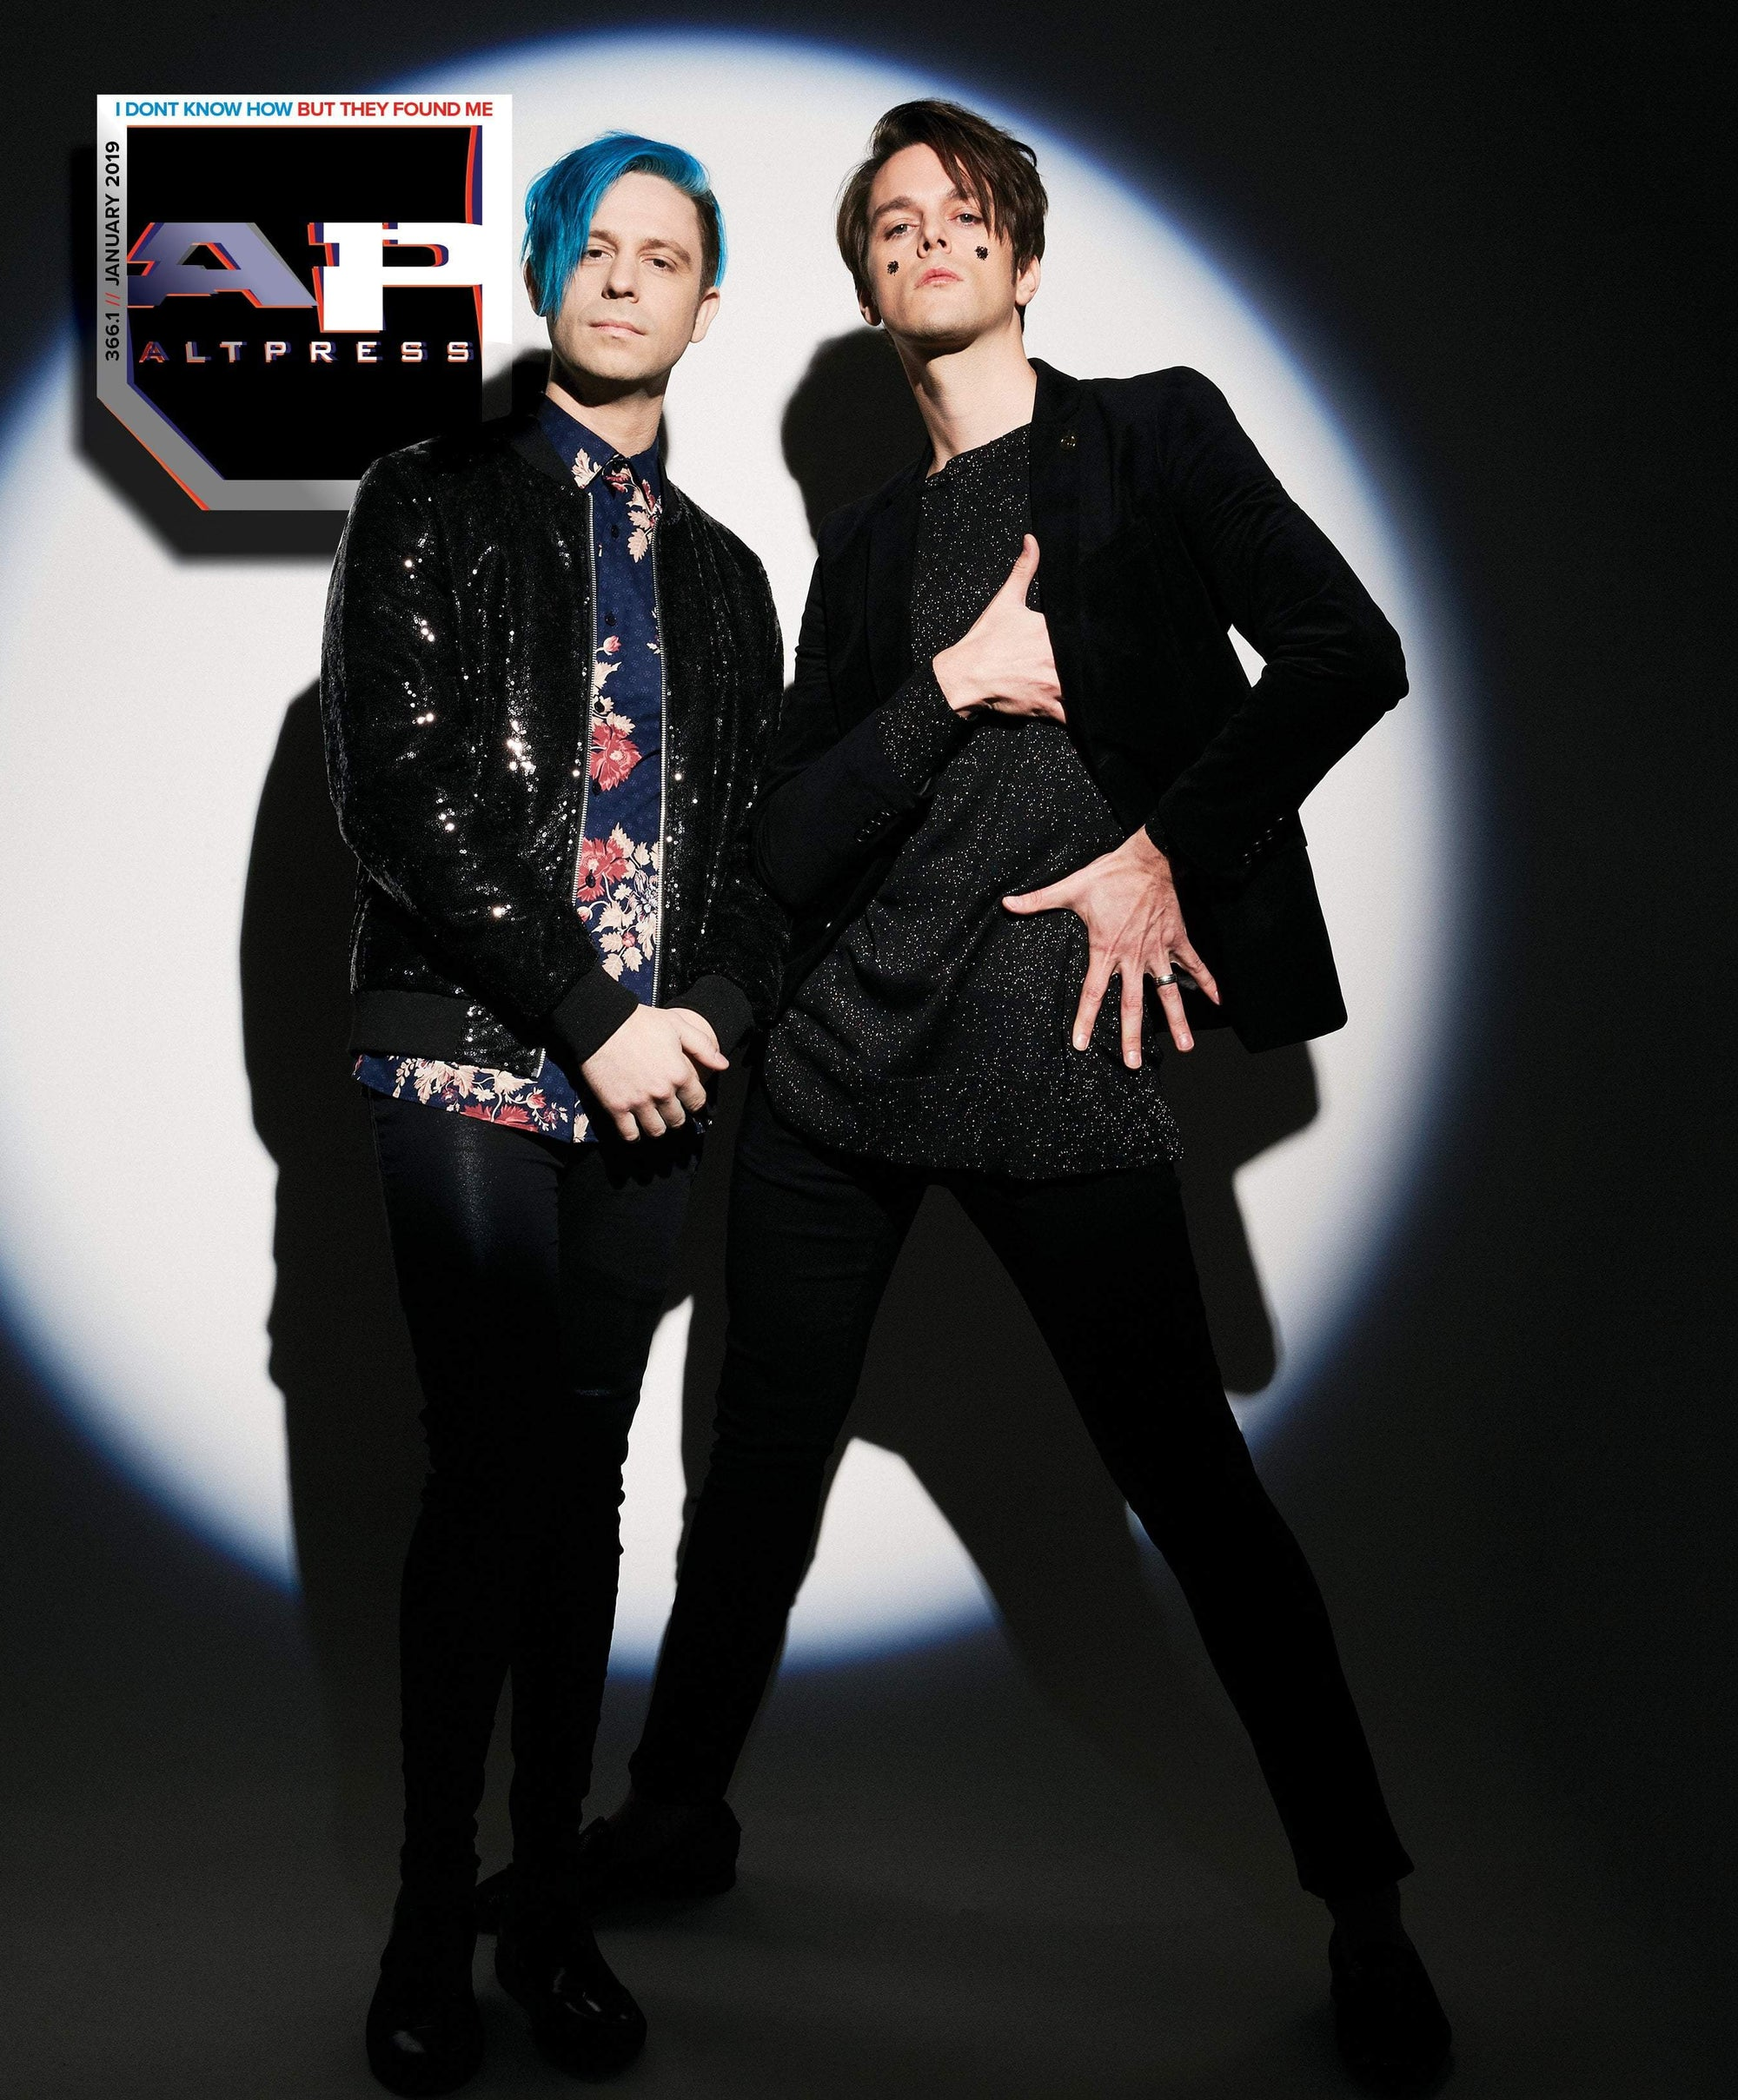 Alternative Press Magazines [366] - iDKHOW Solo Rider